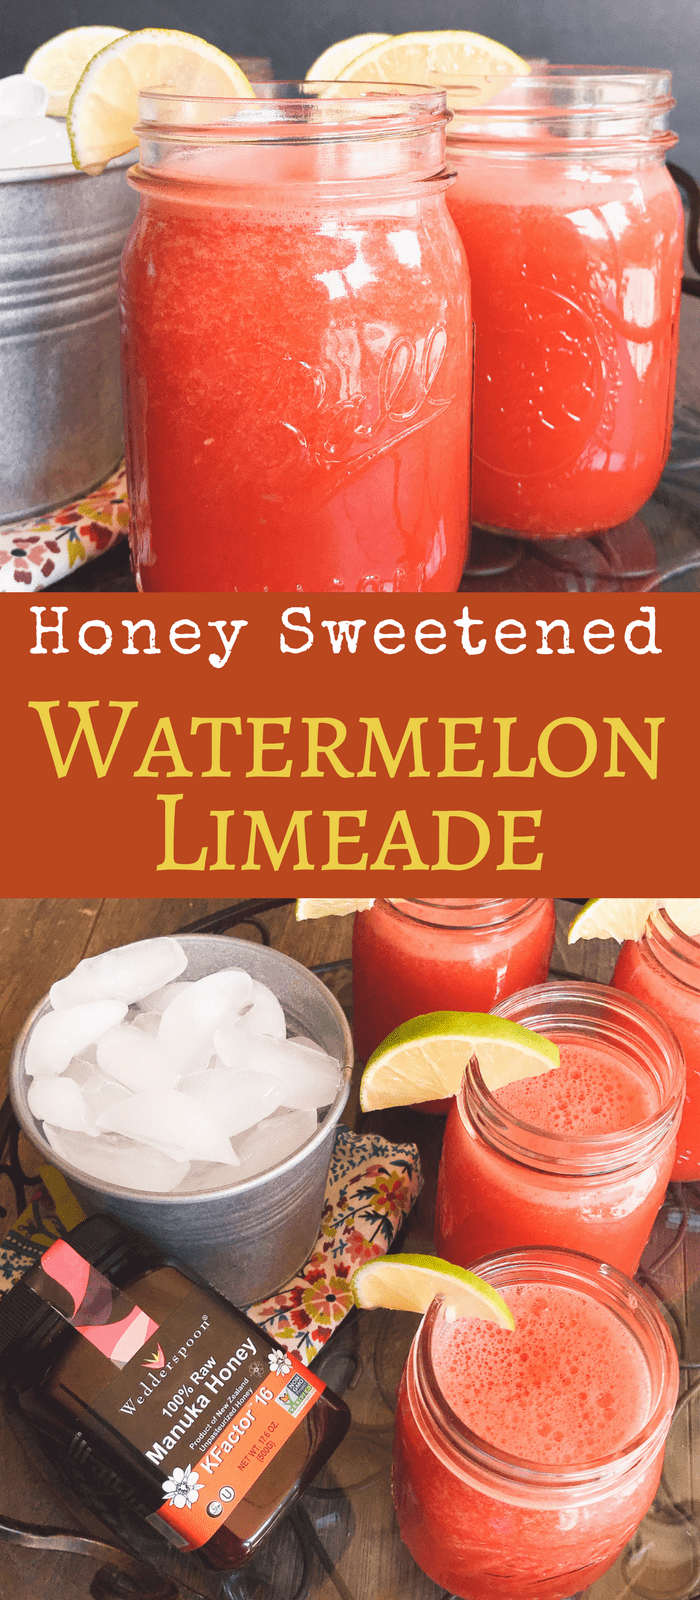 Three ingredient Watermelon Limeade is super simply and so refreshing on a hot summer day. Naturally sweetened with honey for a sweet treat